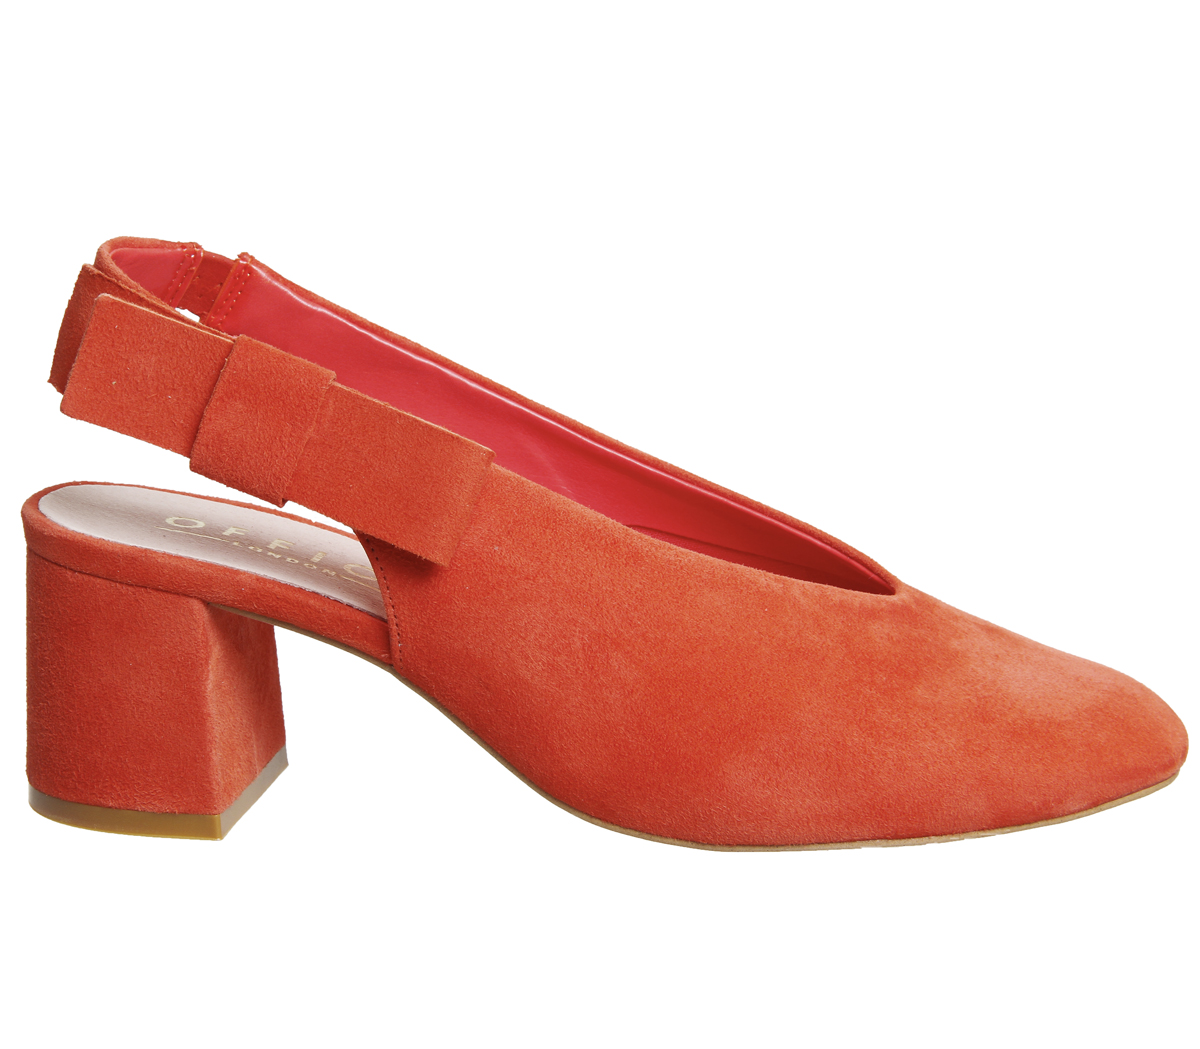 Womens-Office-Magical-Bow-Slingback-Heels-Red-Suede-Heels thumbnail 5